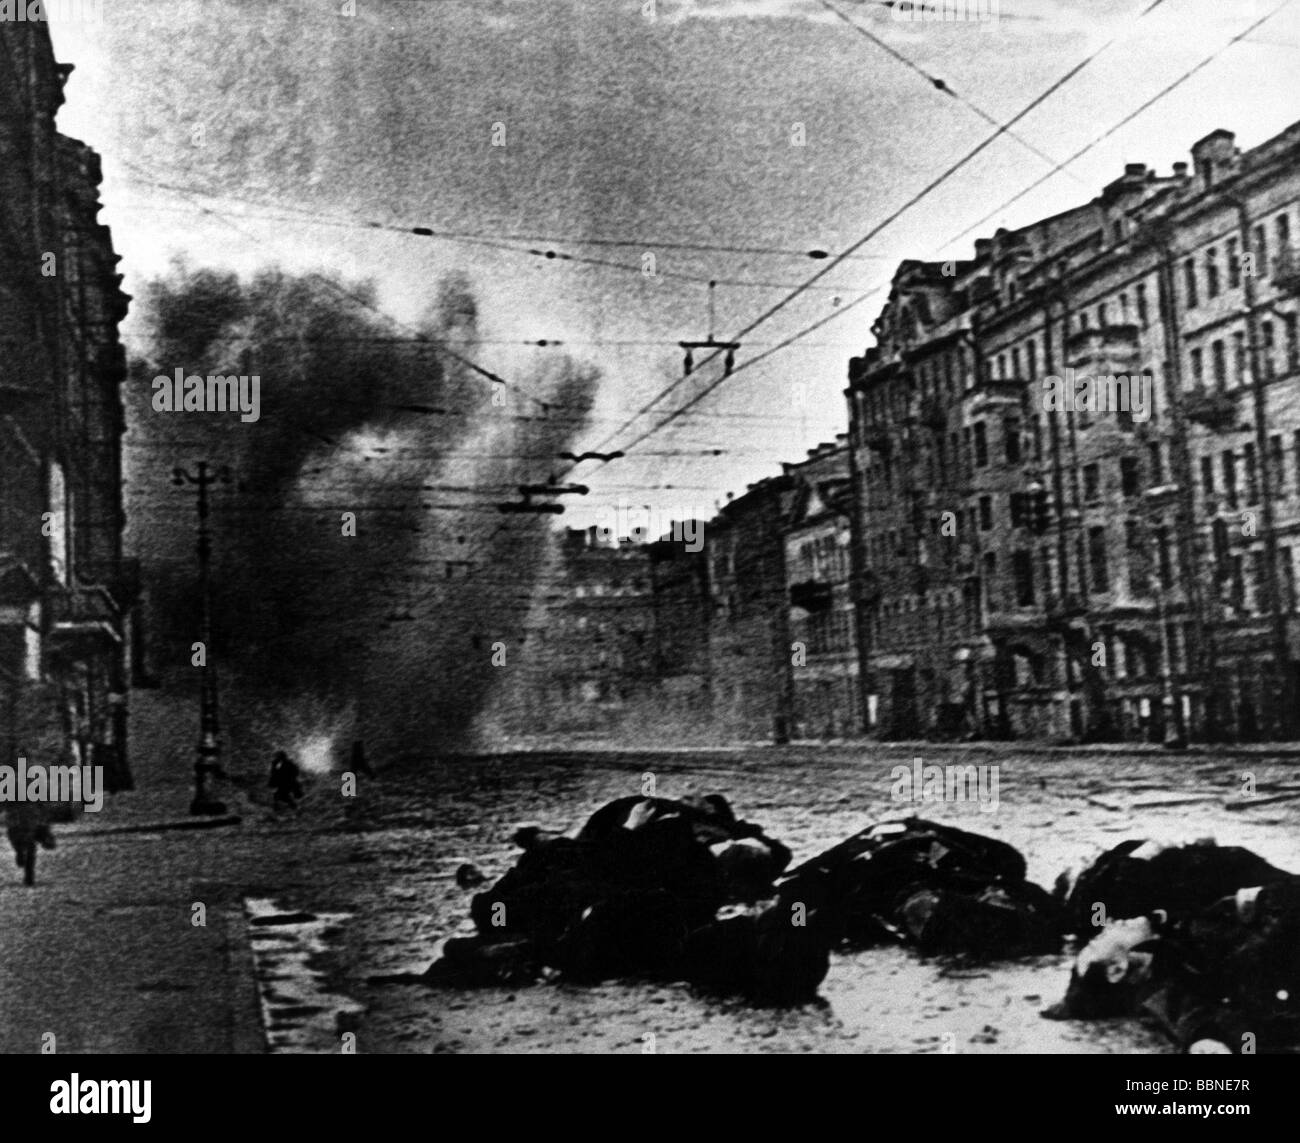 events, Second World War / WWII, Russia, Leningrad, siege, September 1941 - January 1944, German artillery attack, - Stock Image